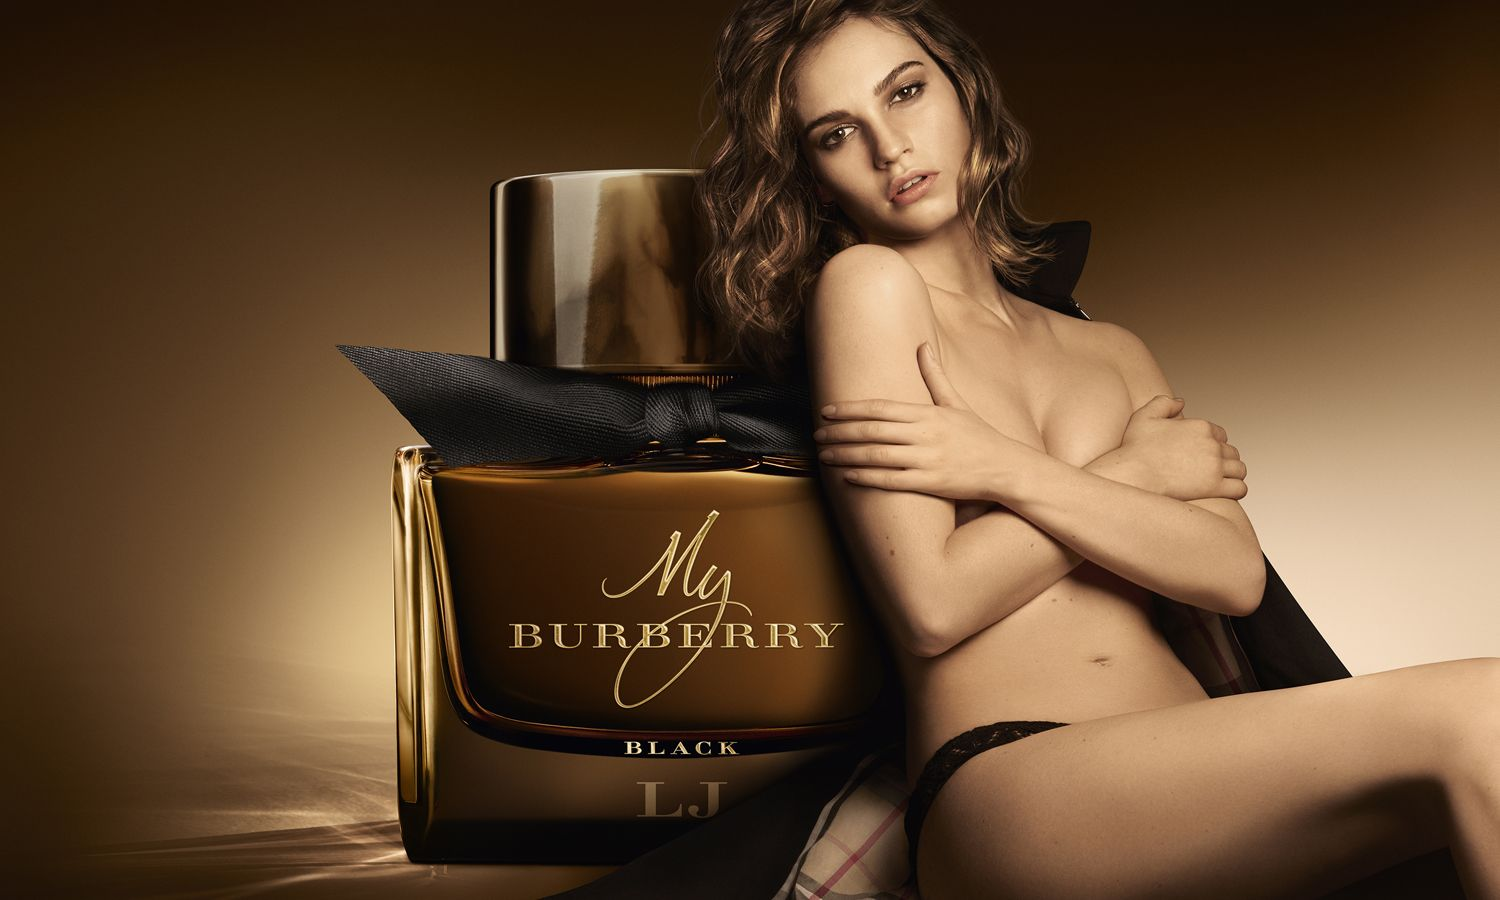 Burberry Takes A Sensuous Turn with My Burberry Black